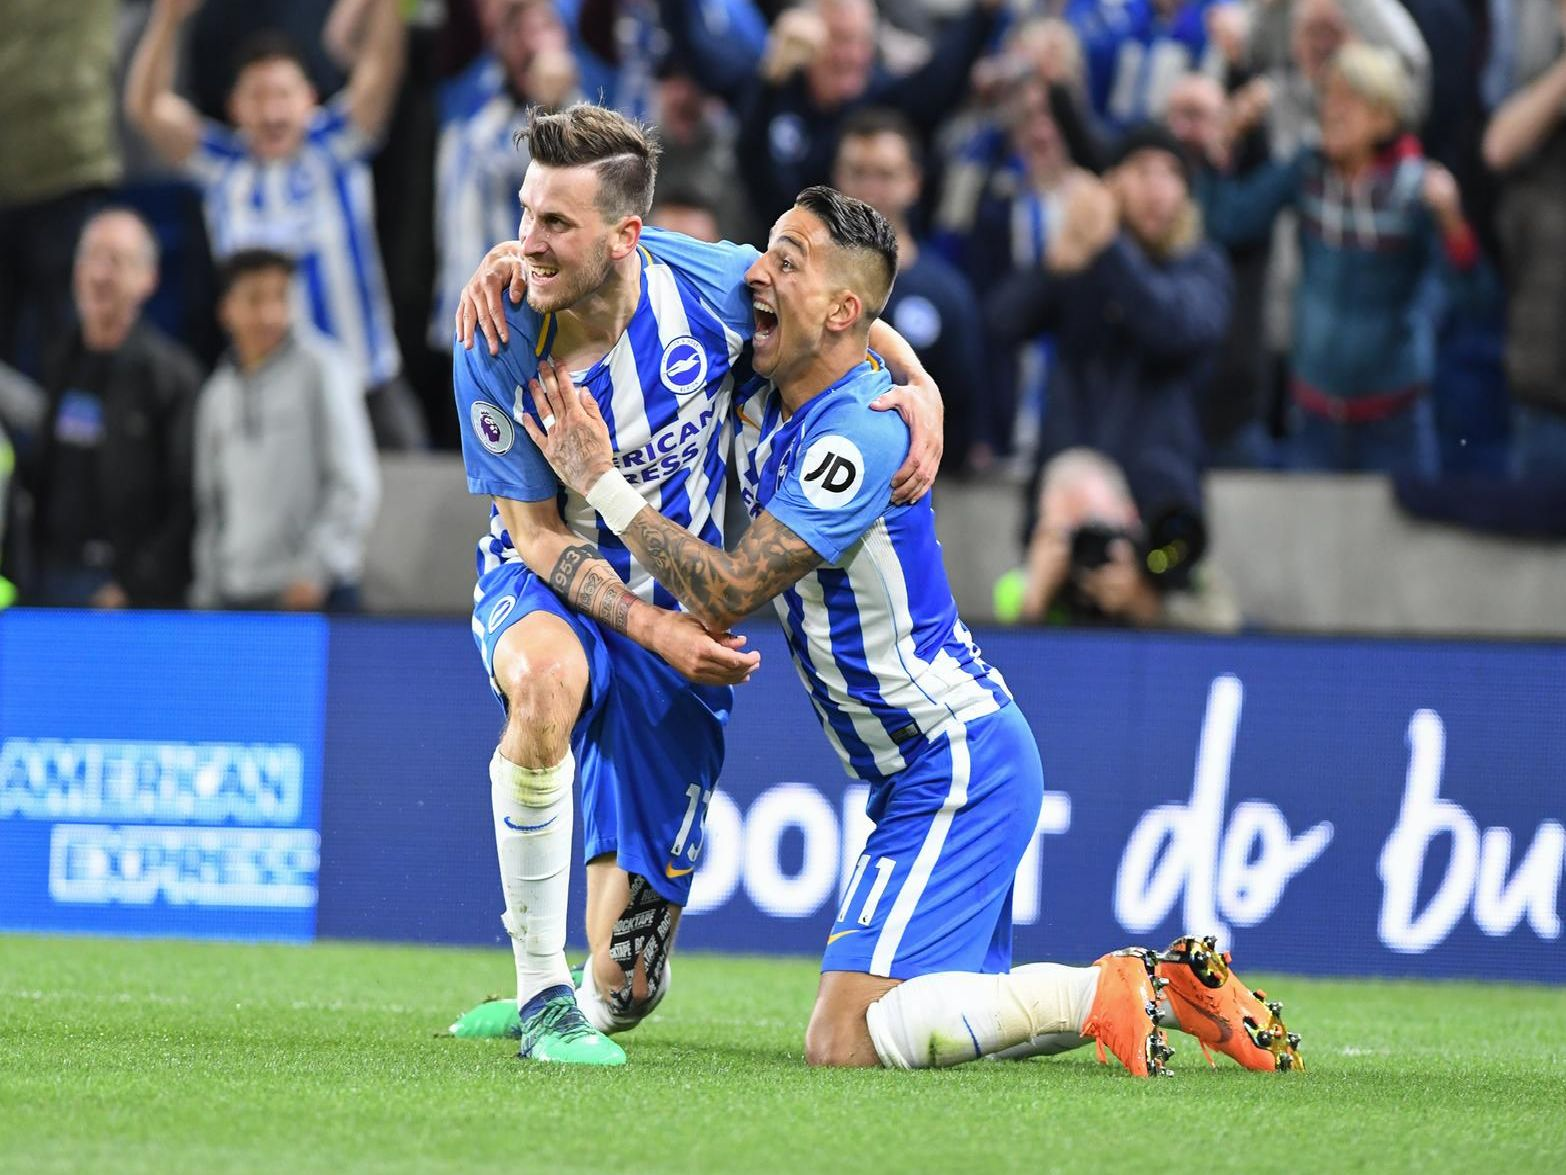 Two of Albion's past player-of-the-season winners Pascal Gross and Anthony Knockaert celebrate a goal.